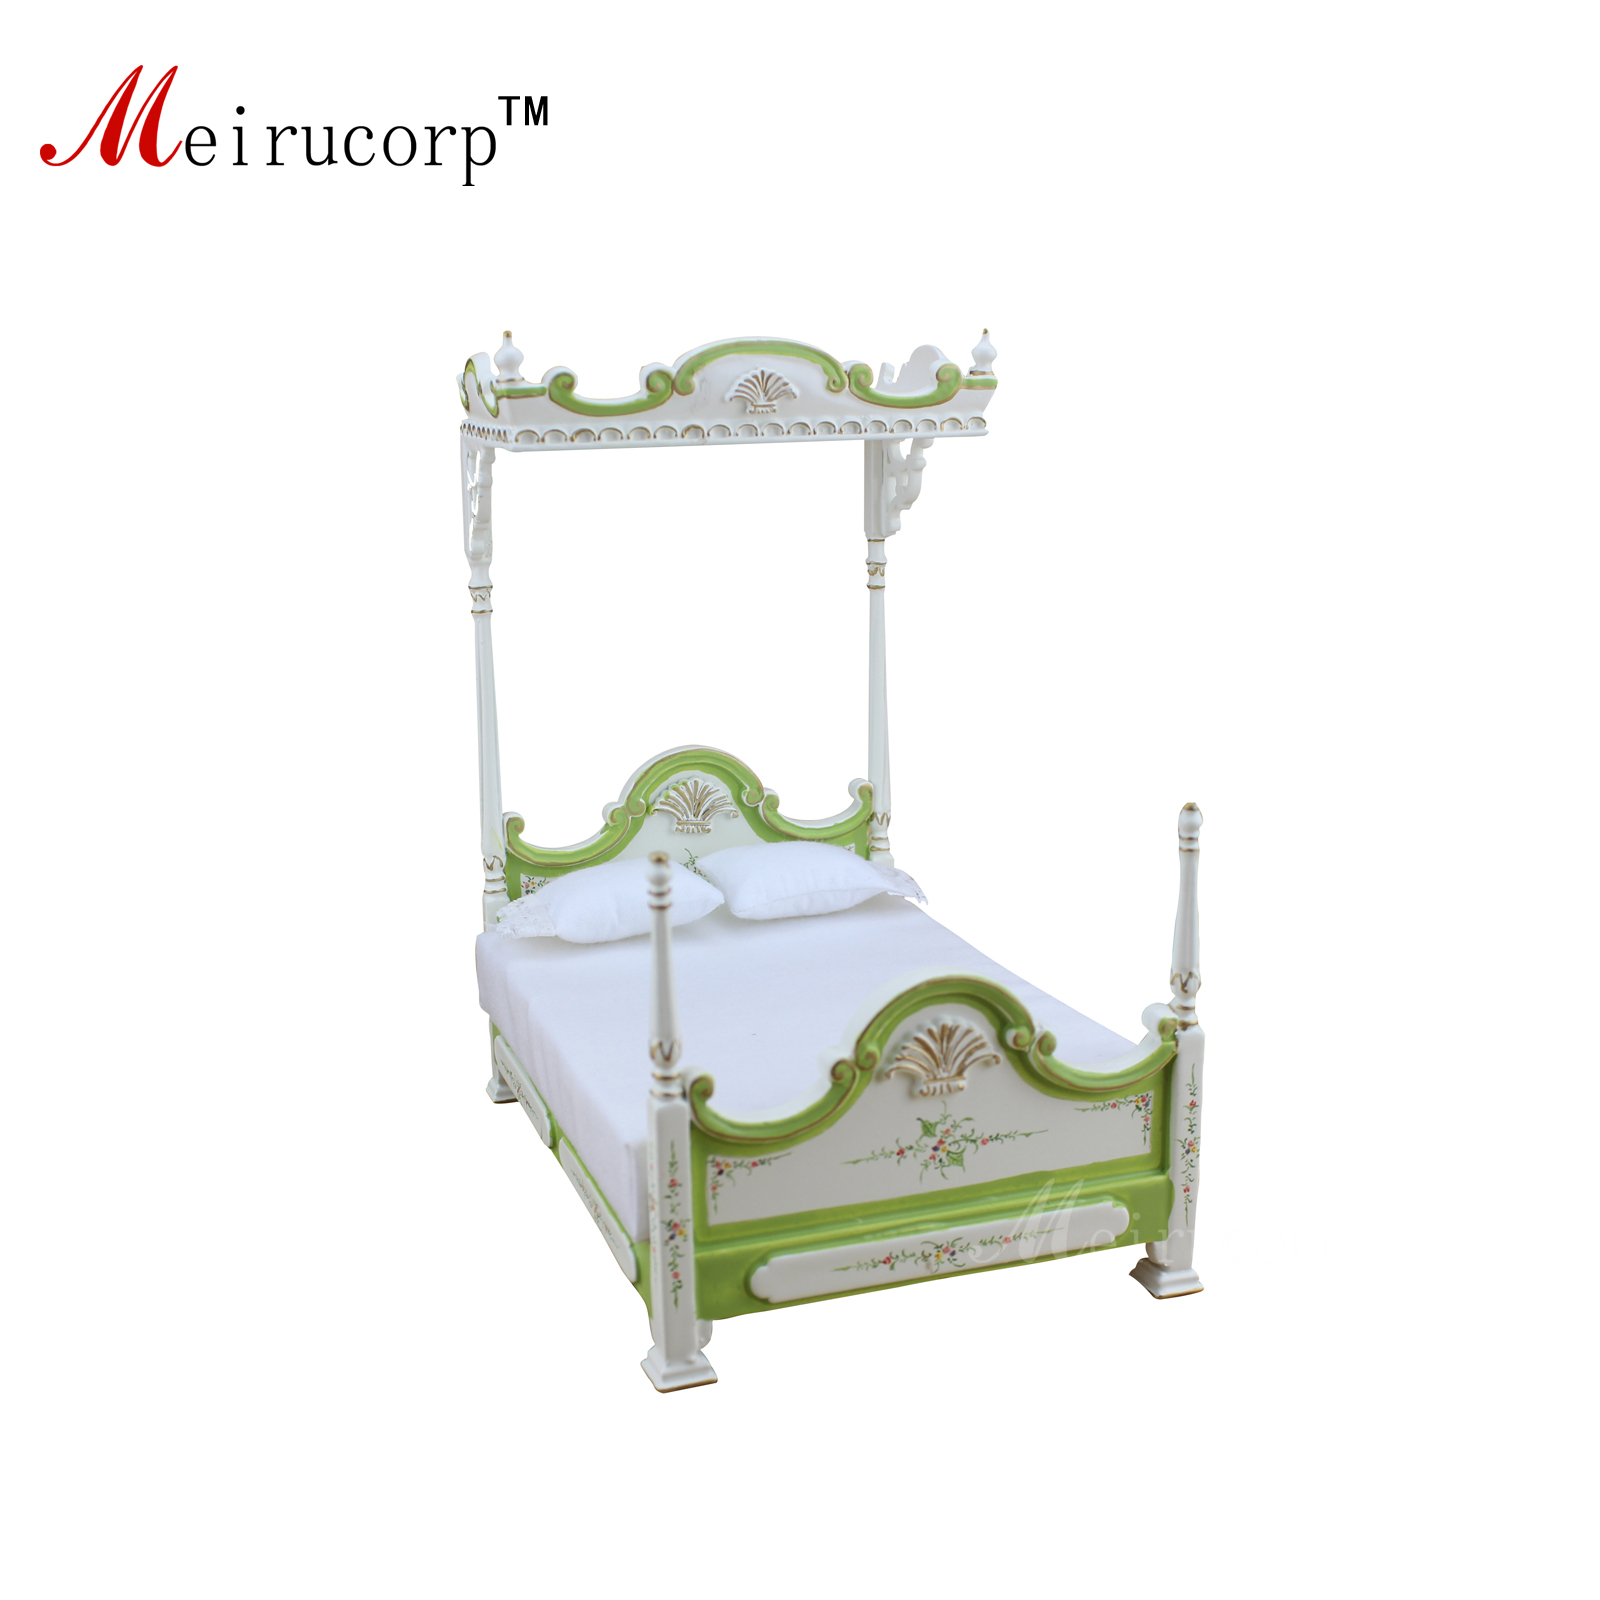 Dollhouse 1:12 scale Miniature furniture Hand painted Classical Luxury Bed 10667 jennifer taylor home sofa bed hand tufted hand painted and hand rub finished wooden legs 65000 584 859 865